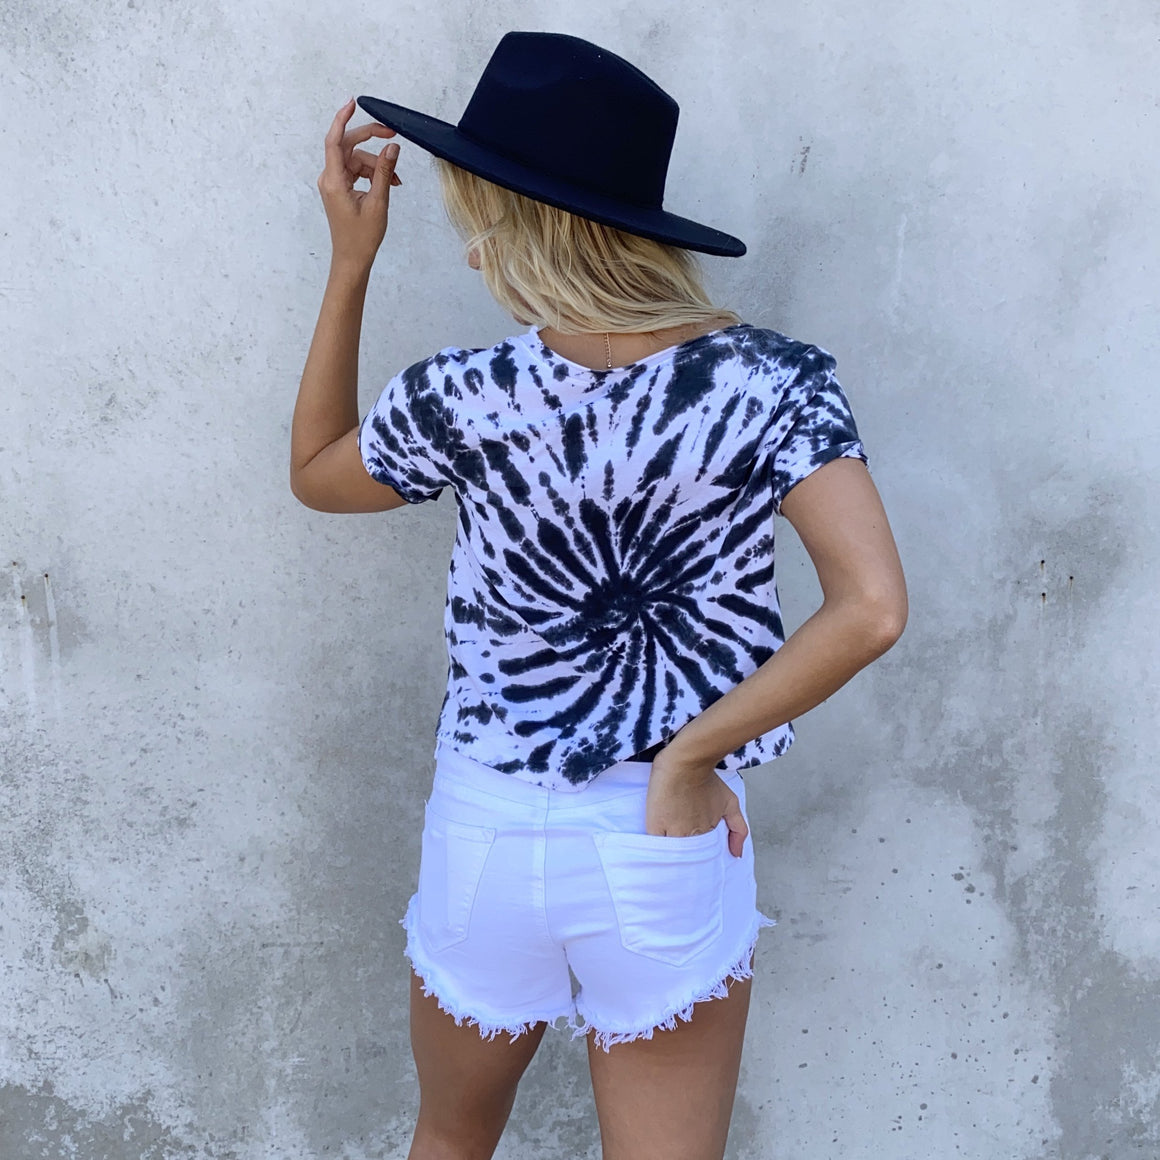 Tie Dye For Black & White Cotton Top - Dainty Hooligan